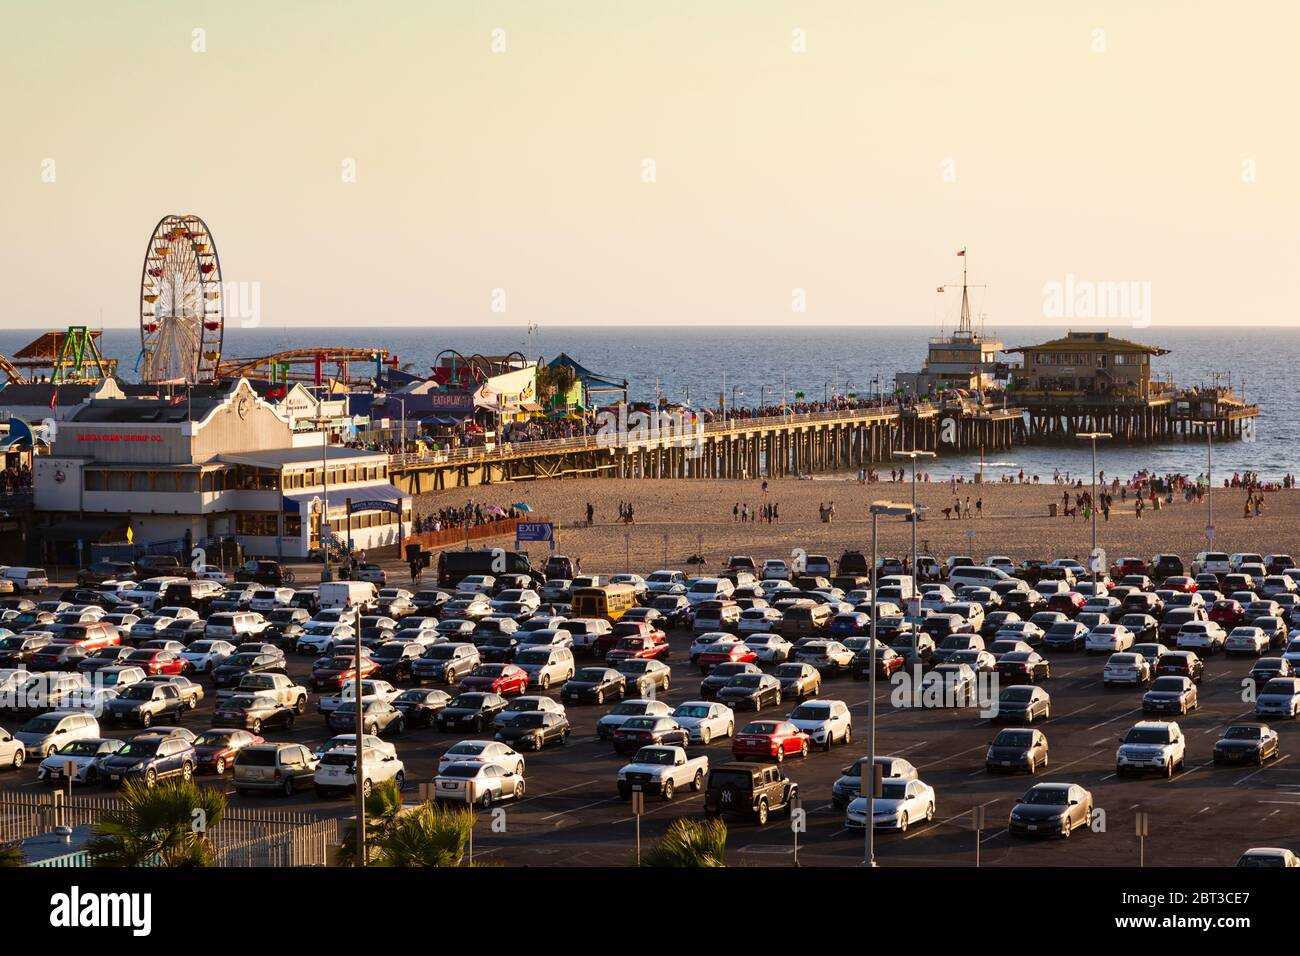 Parking lot and cars at sundown, Santa Monica pier and beach, Los Angeles, California, United States of America. Stock Photo